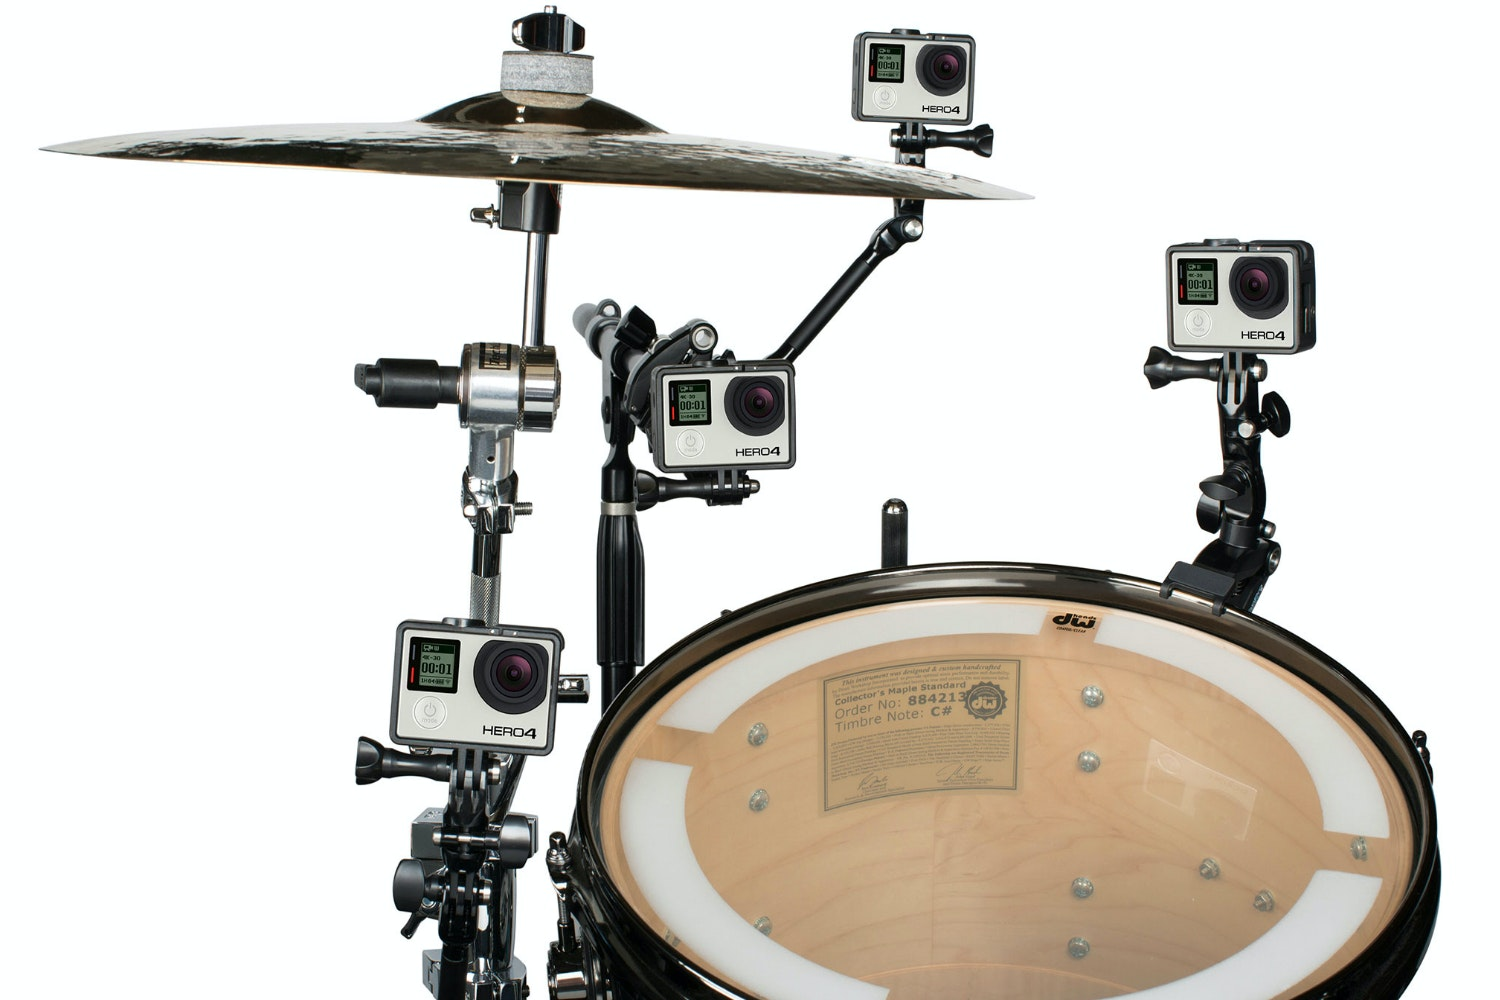 The Jam Drum mount